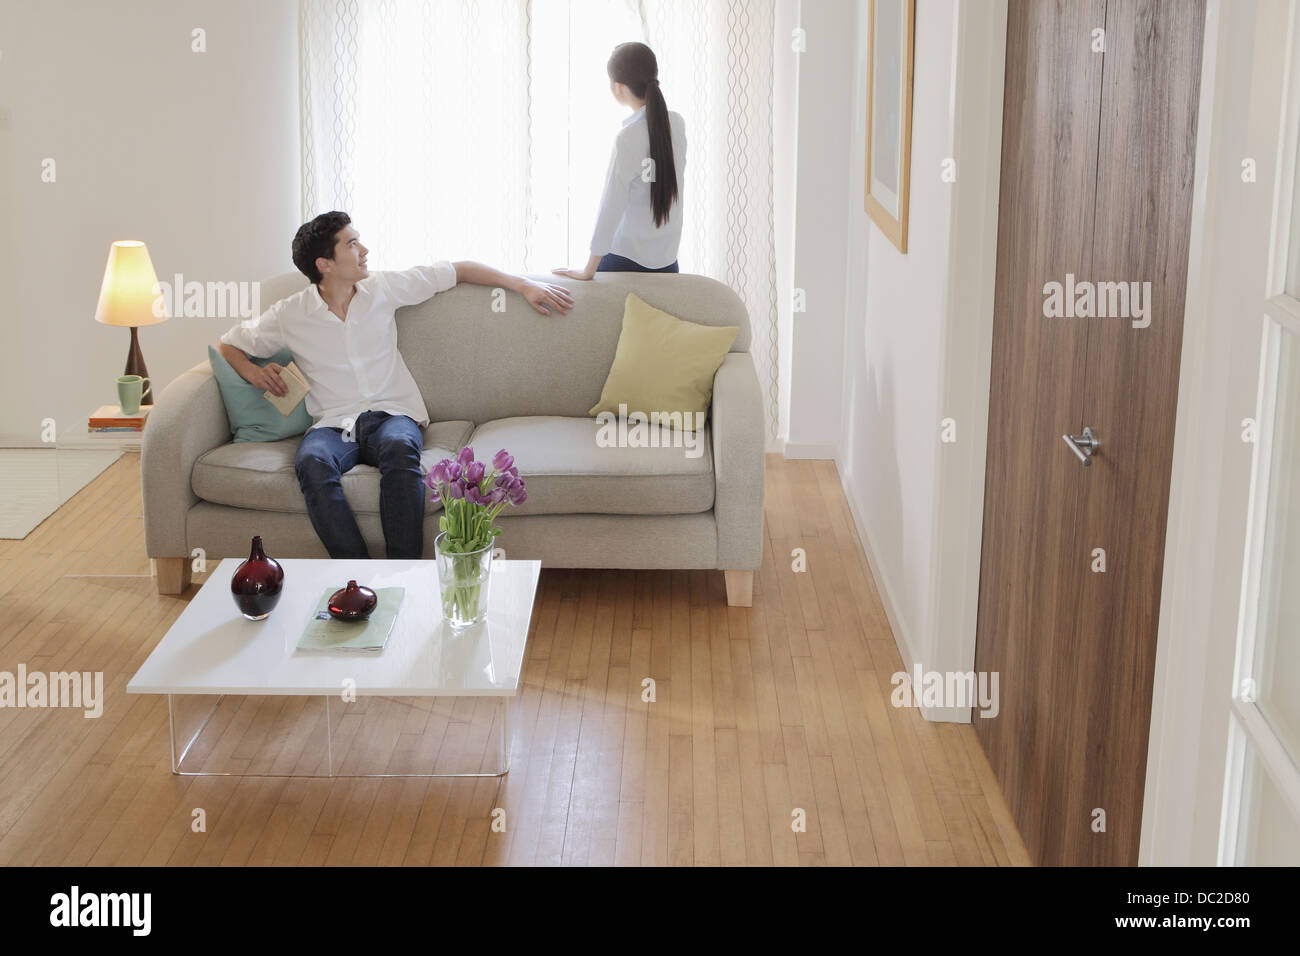 Husband turning round on sofa to look at wife - Stock Image